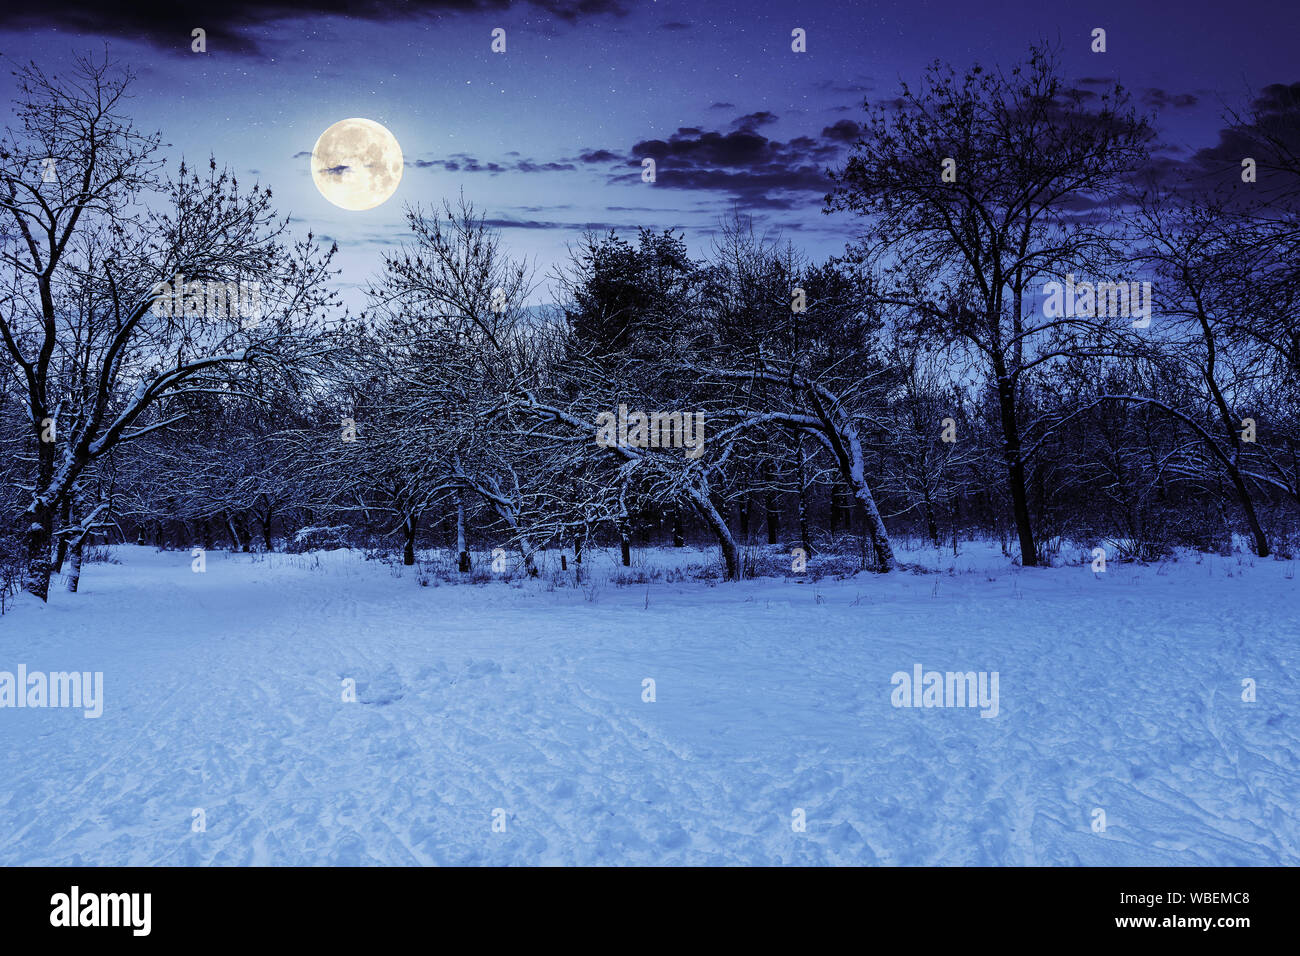 Park In Winter At Night Beautiful Nature Scenery In Full Moon Light Stock Photo Alamy